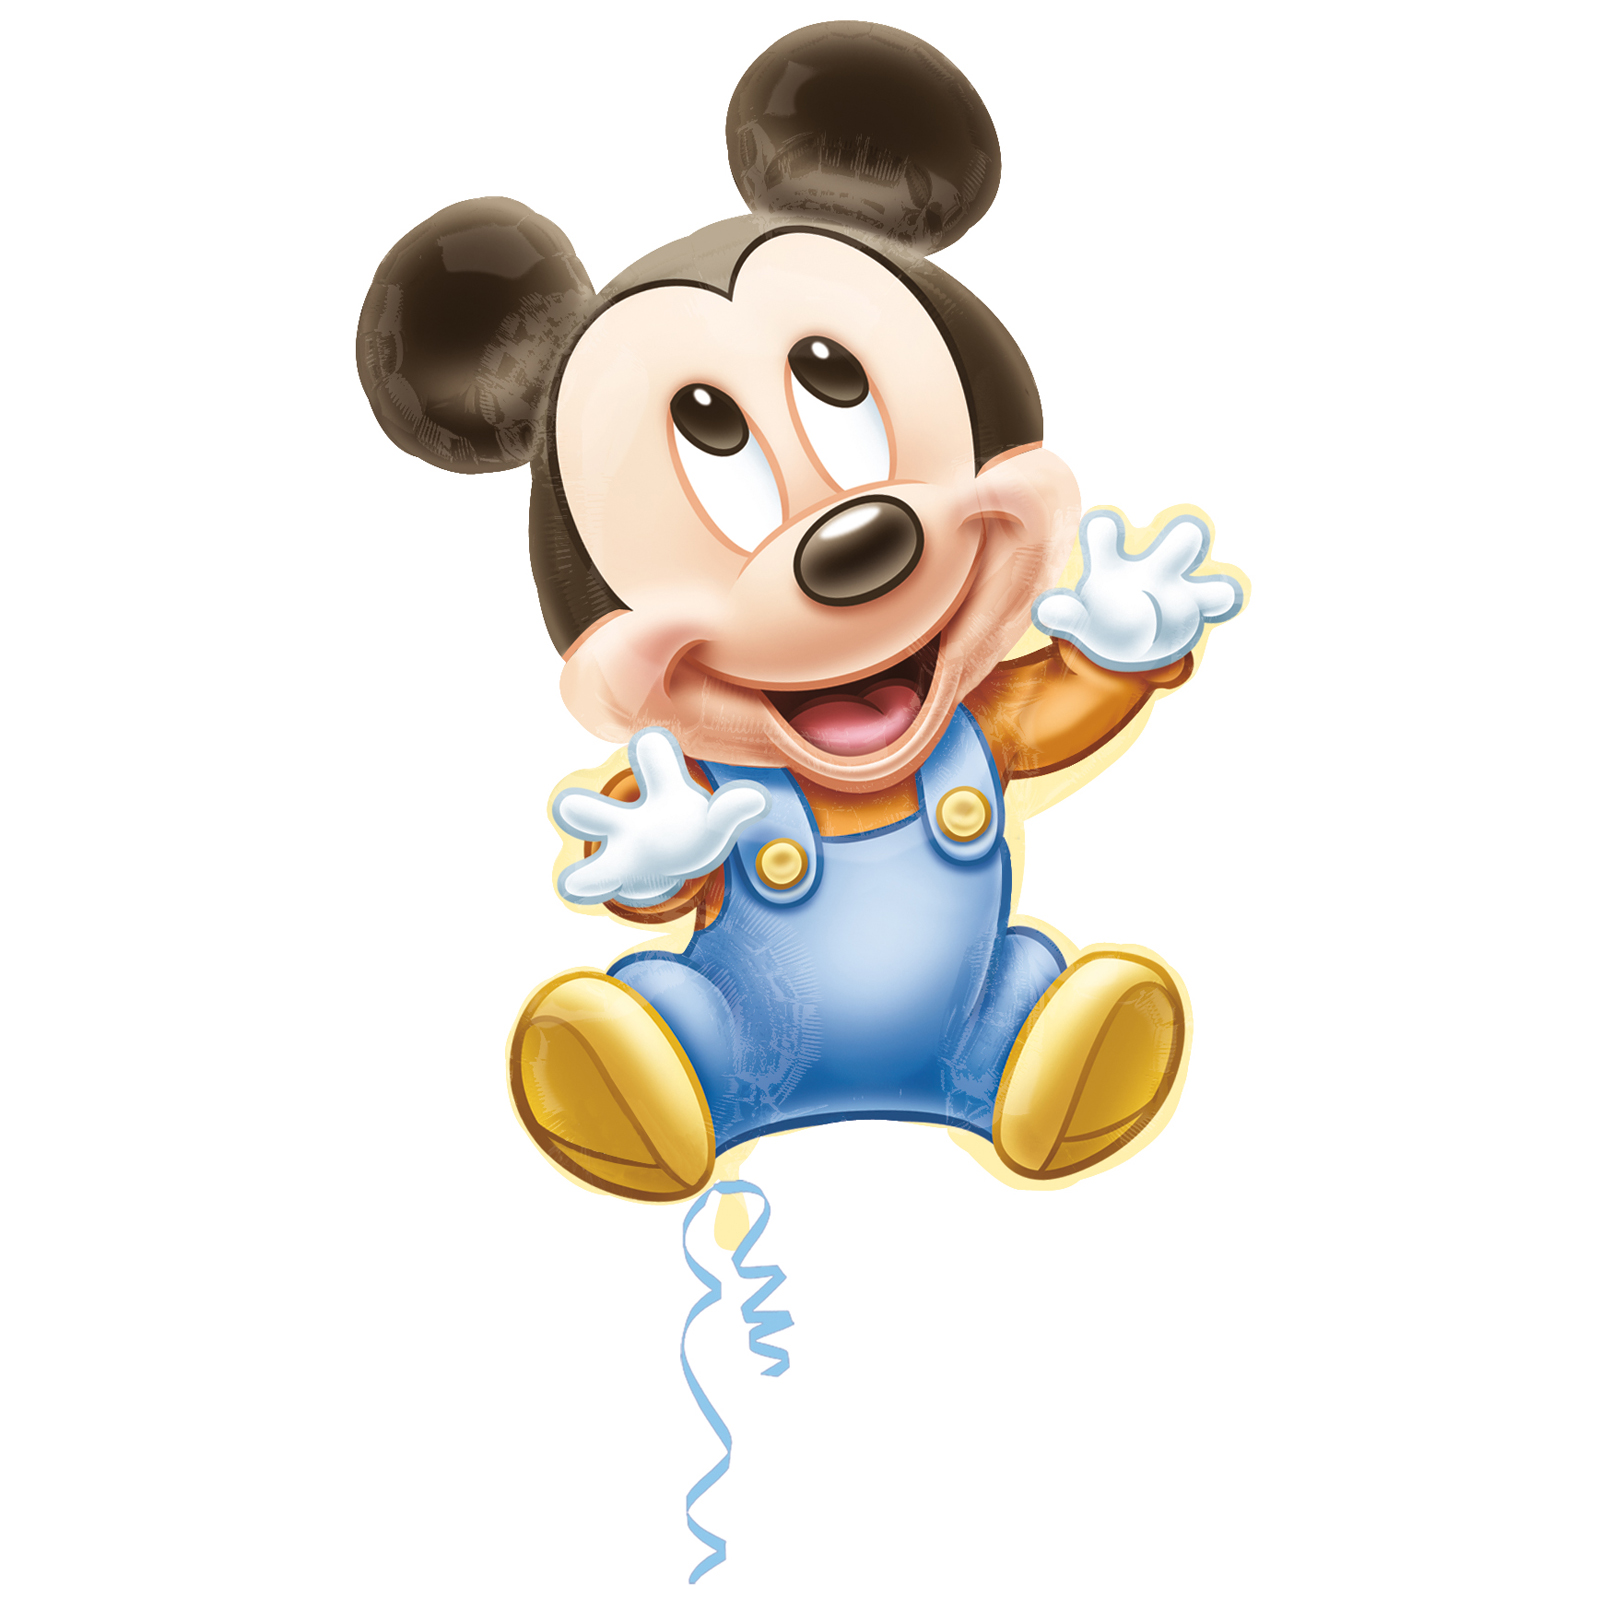 Free Download Baby Mickey Mouse Wallpaper The Art Mad Wallpapers 1600x1600 For Your Desktop Mobile Tablet Explore 49 Baby Mickey Mouse Wallpaper Mickey And Minnie Wallpaper Baby Minnie Mouse